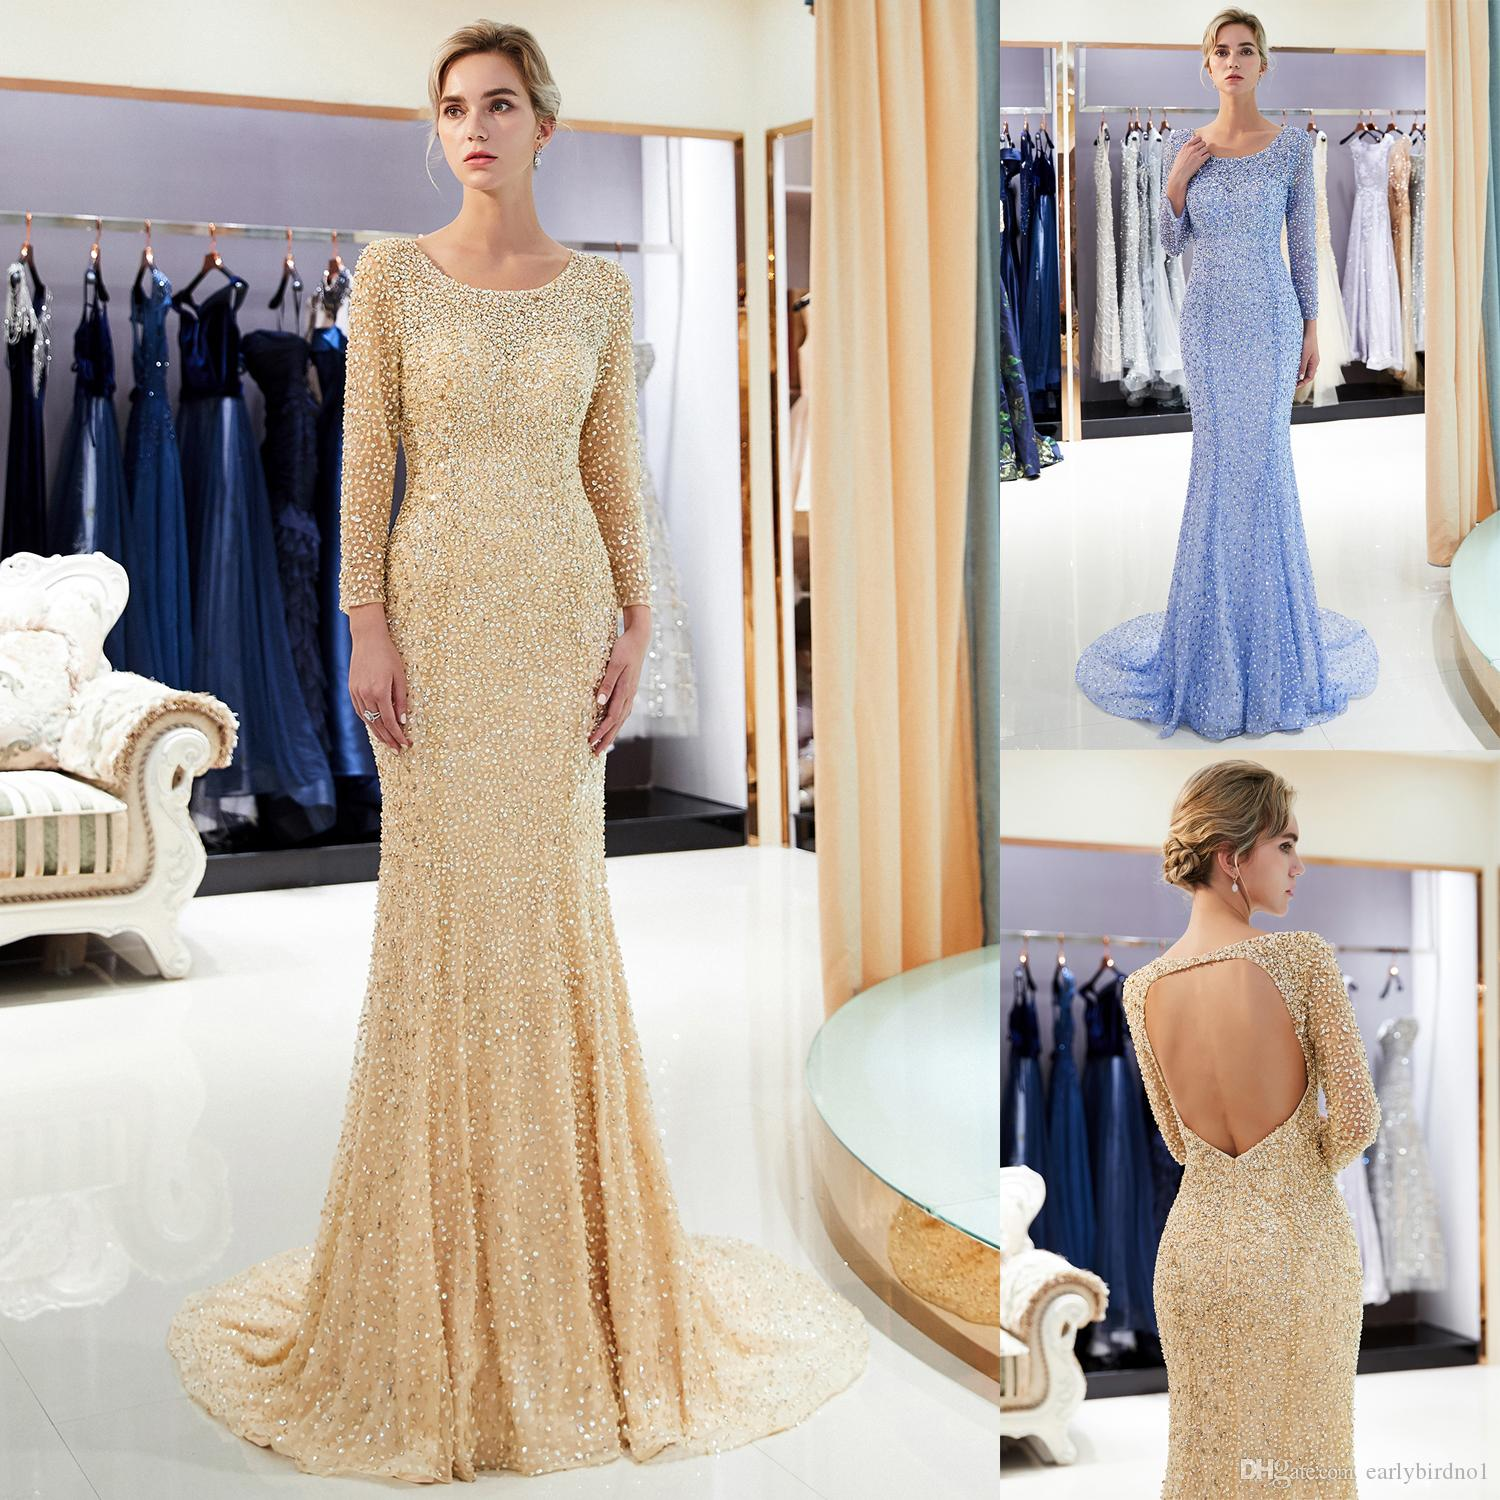 87047c2d79a Long Sleeves Luxury Beaded Designer Evening Party Dresses Hollow Back Sweep  Train Wedding Guest Dress 100% Real Image Prom Gown CPS1182 Designer Long  Dress ...